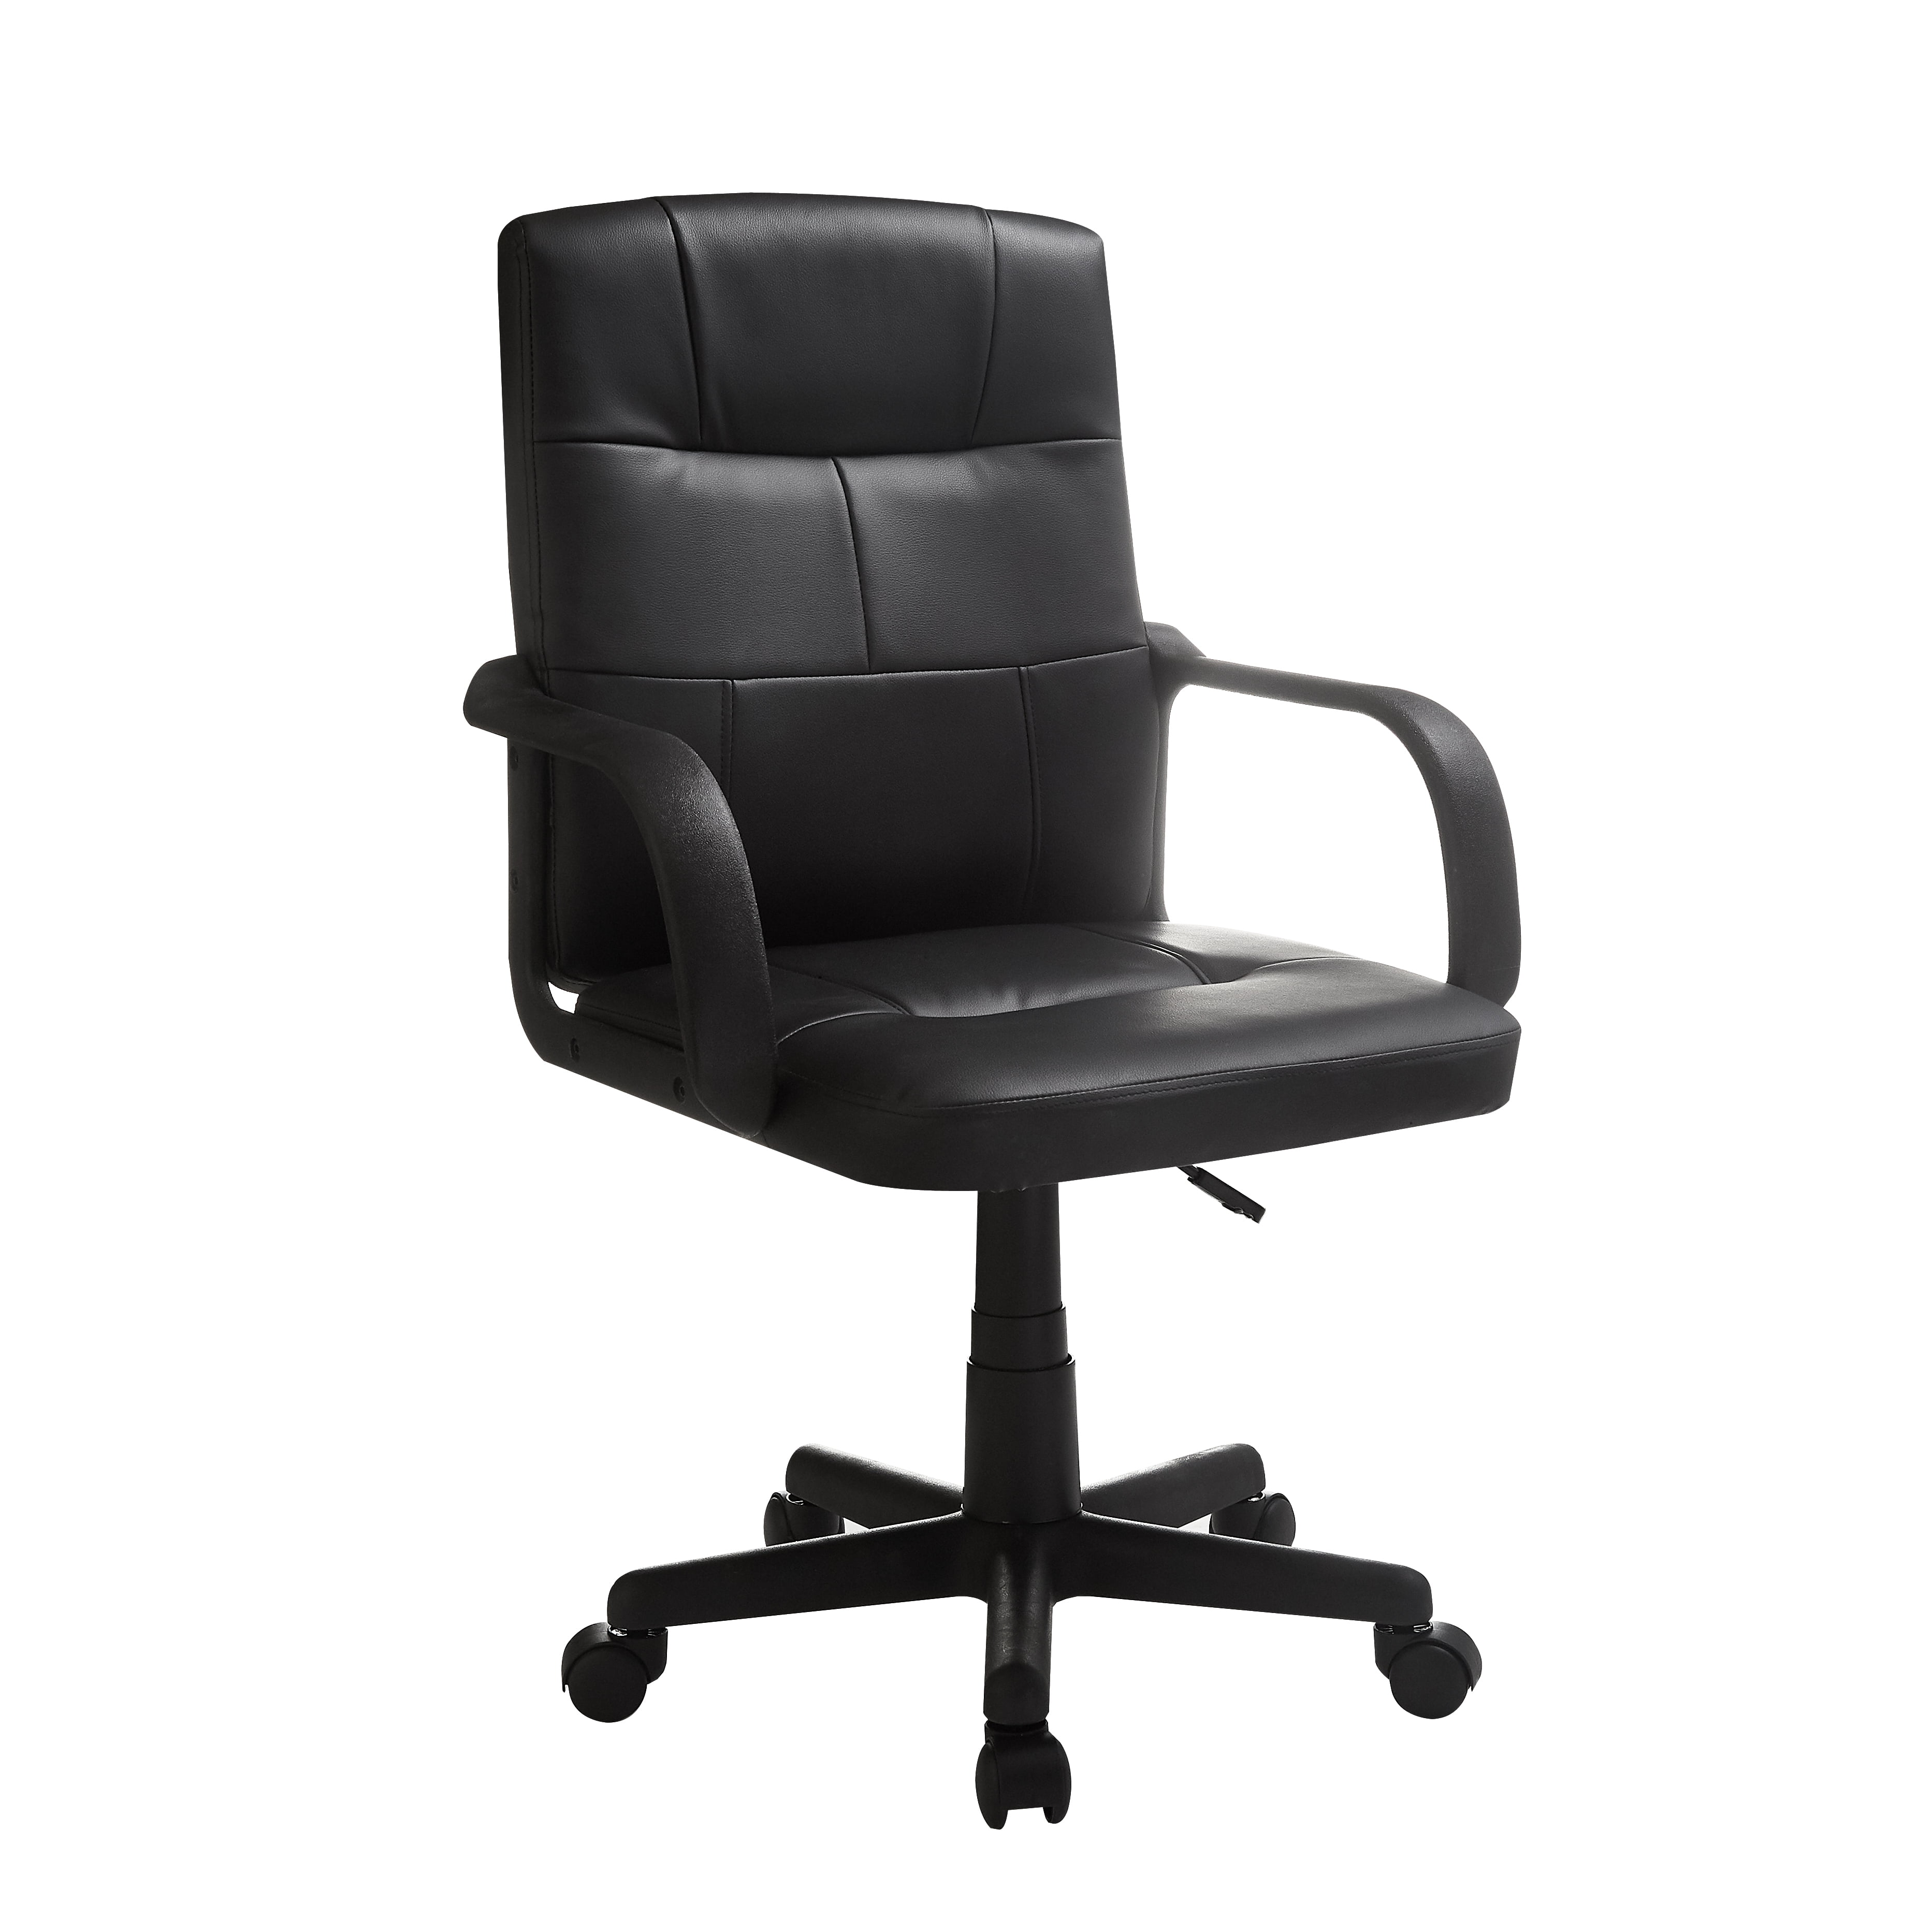 Mainstays Tufted Leather Mid Back Office Chair Multiple Colors Walmart Com Walmart Com